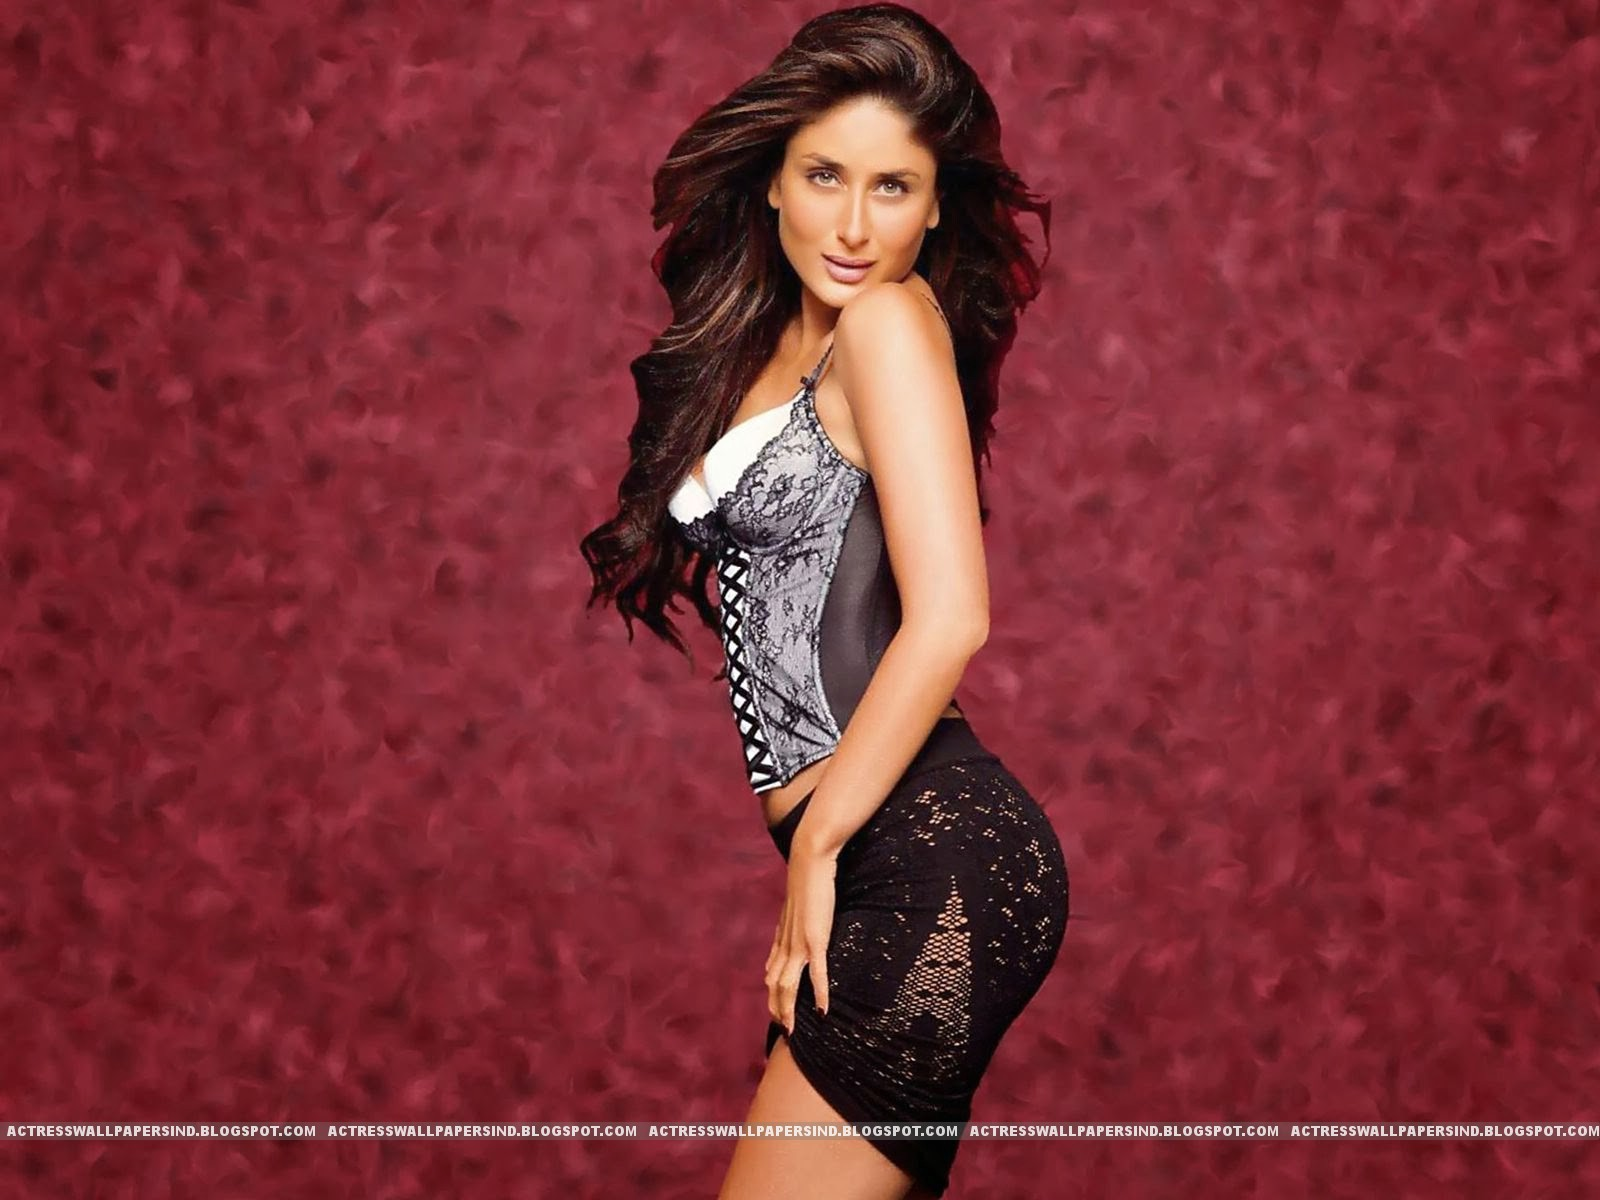 Kareena Kapoor Sexy Photo Hd Shoot Full Gallery - A Wind-6854